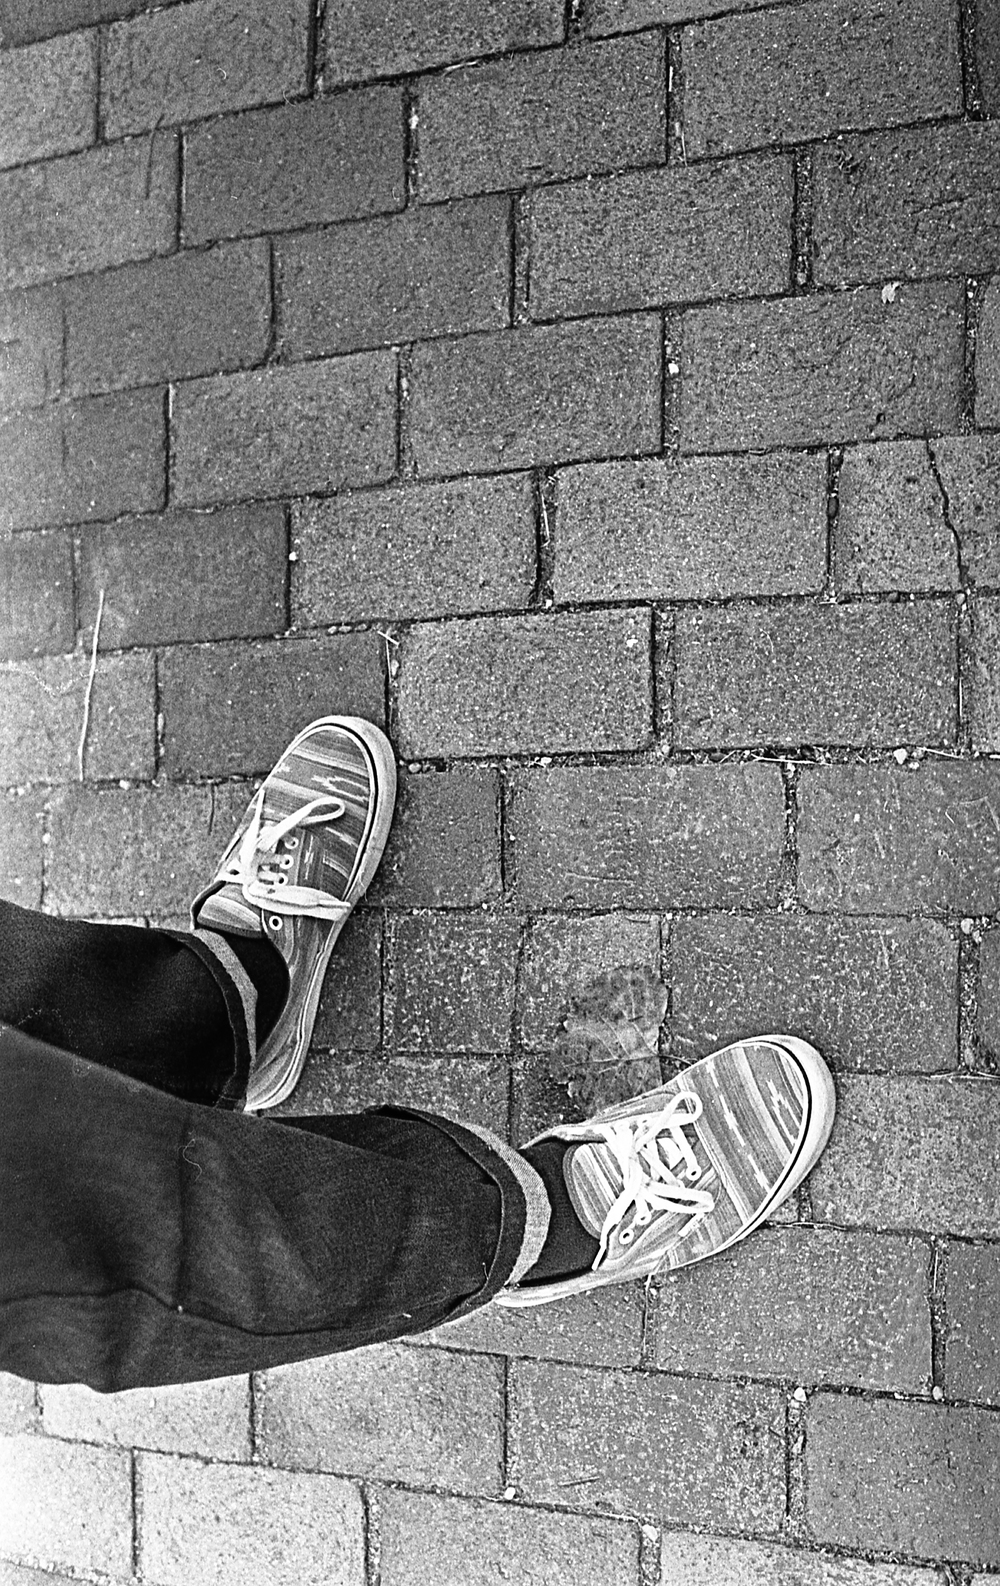 Rodinal_trix_Jan (7 of 23).jpg